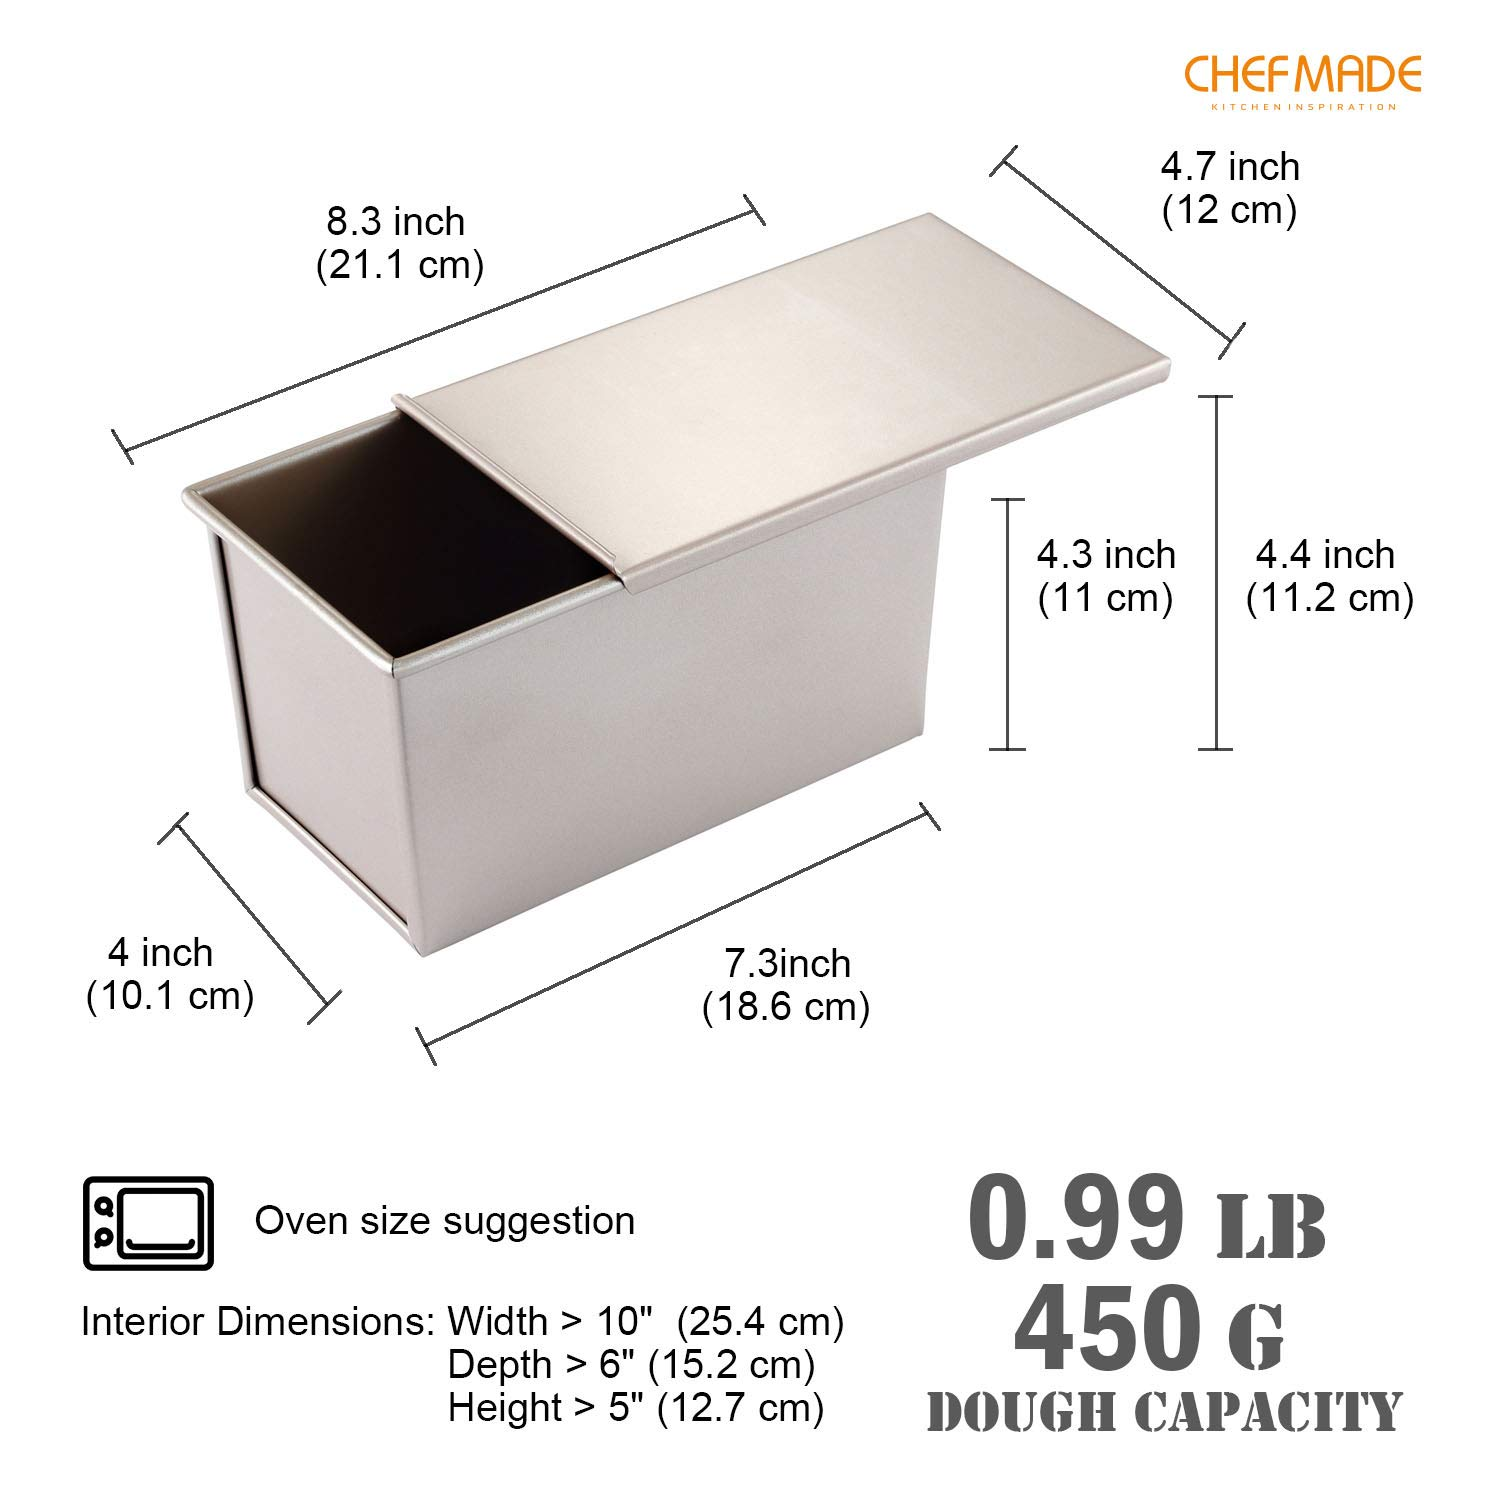 Champagne Gold FDA Approved for Oven Baking 0.66Lb Dough Capacity Non-stick Rectangle Smooth Toast Box CHEFMADE Pullman Loaf Pan with Lip